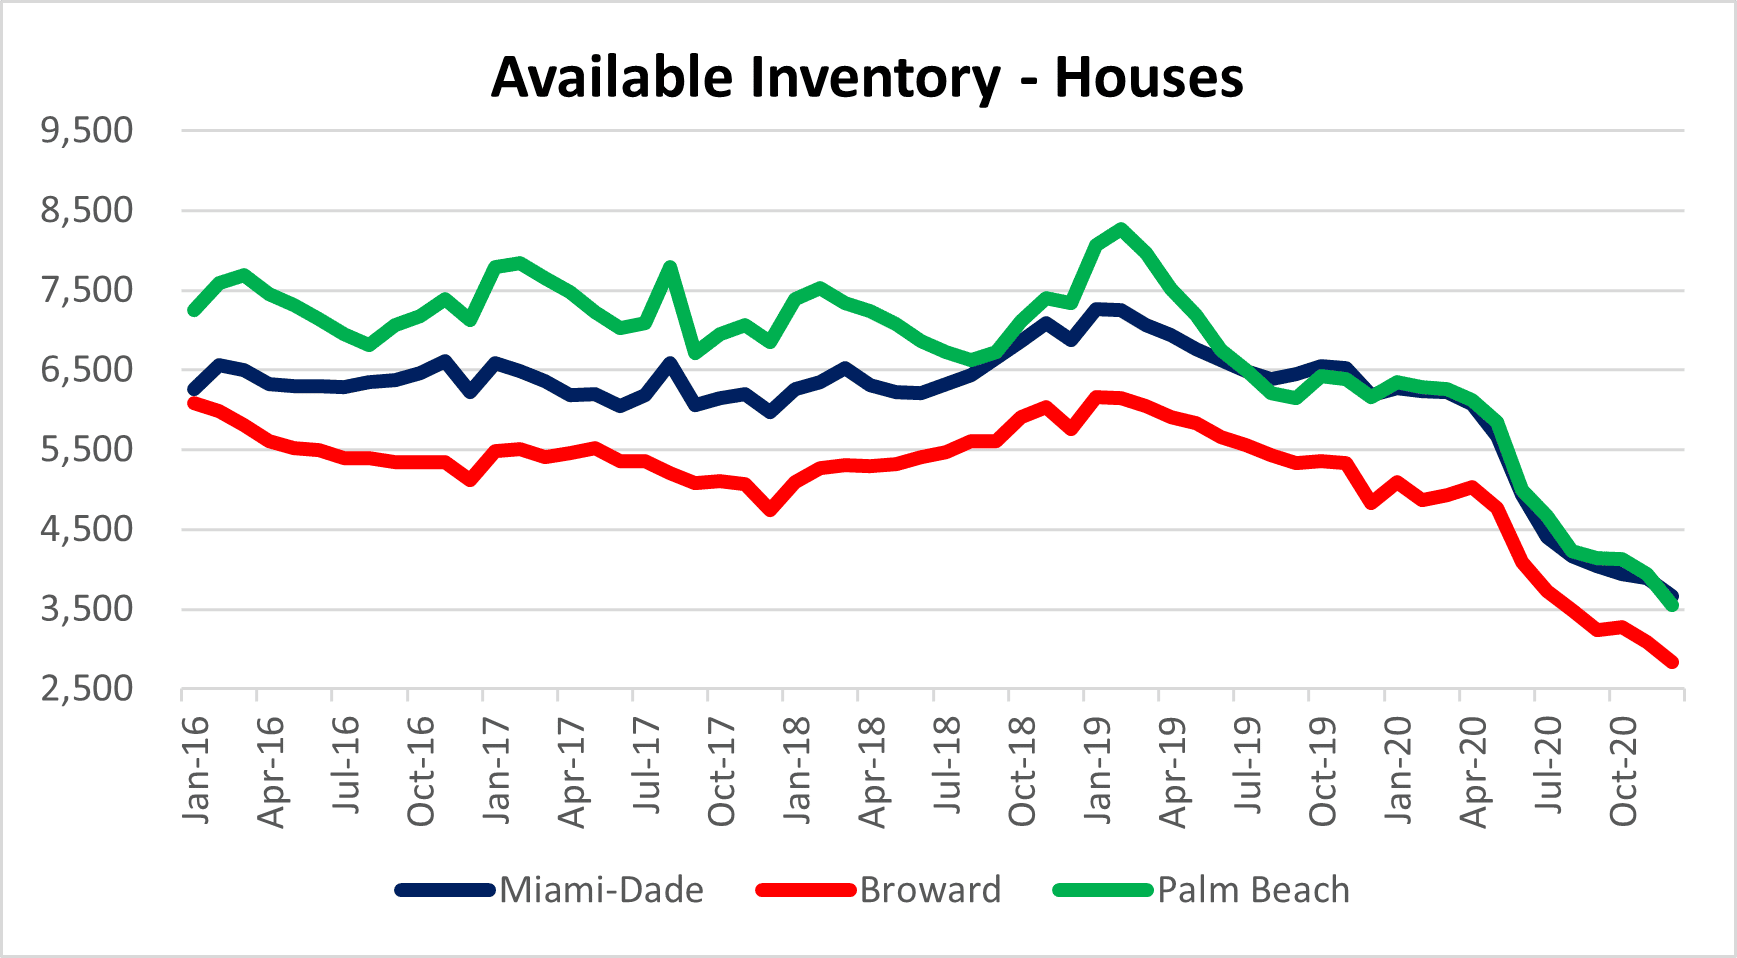 Housing inventory drops again in South Florida